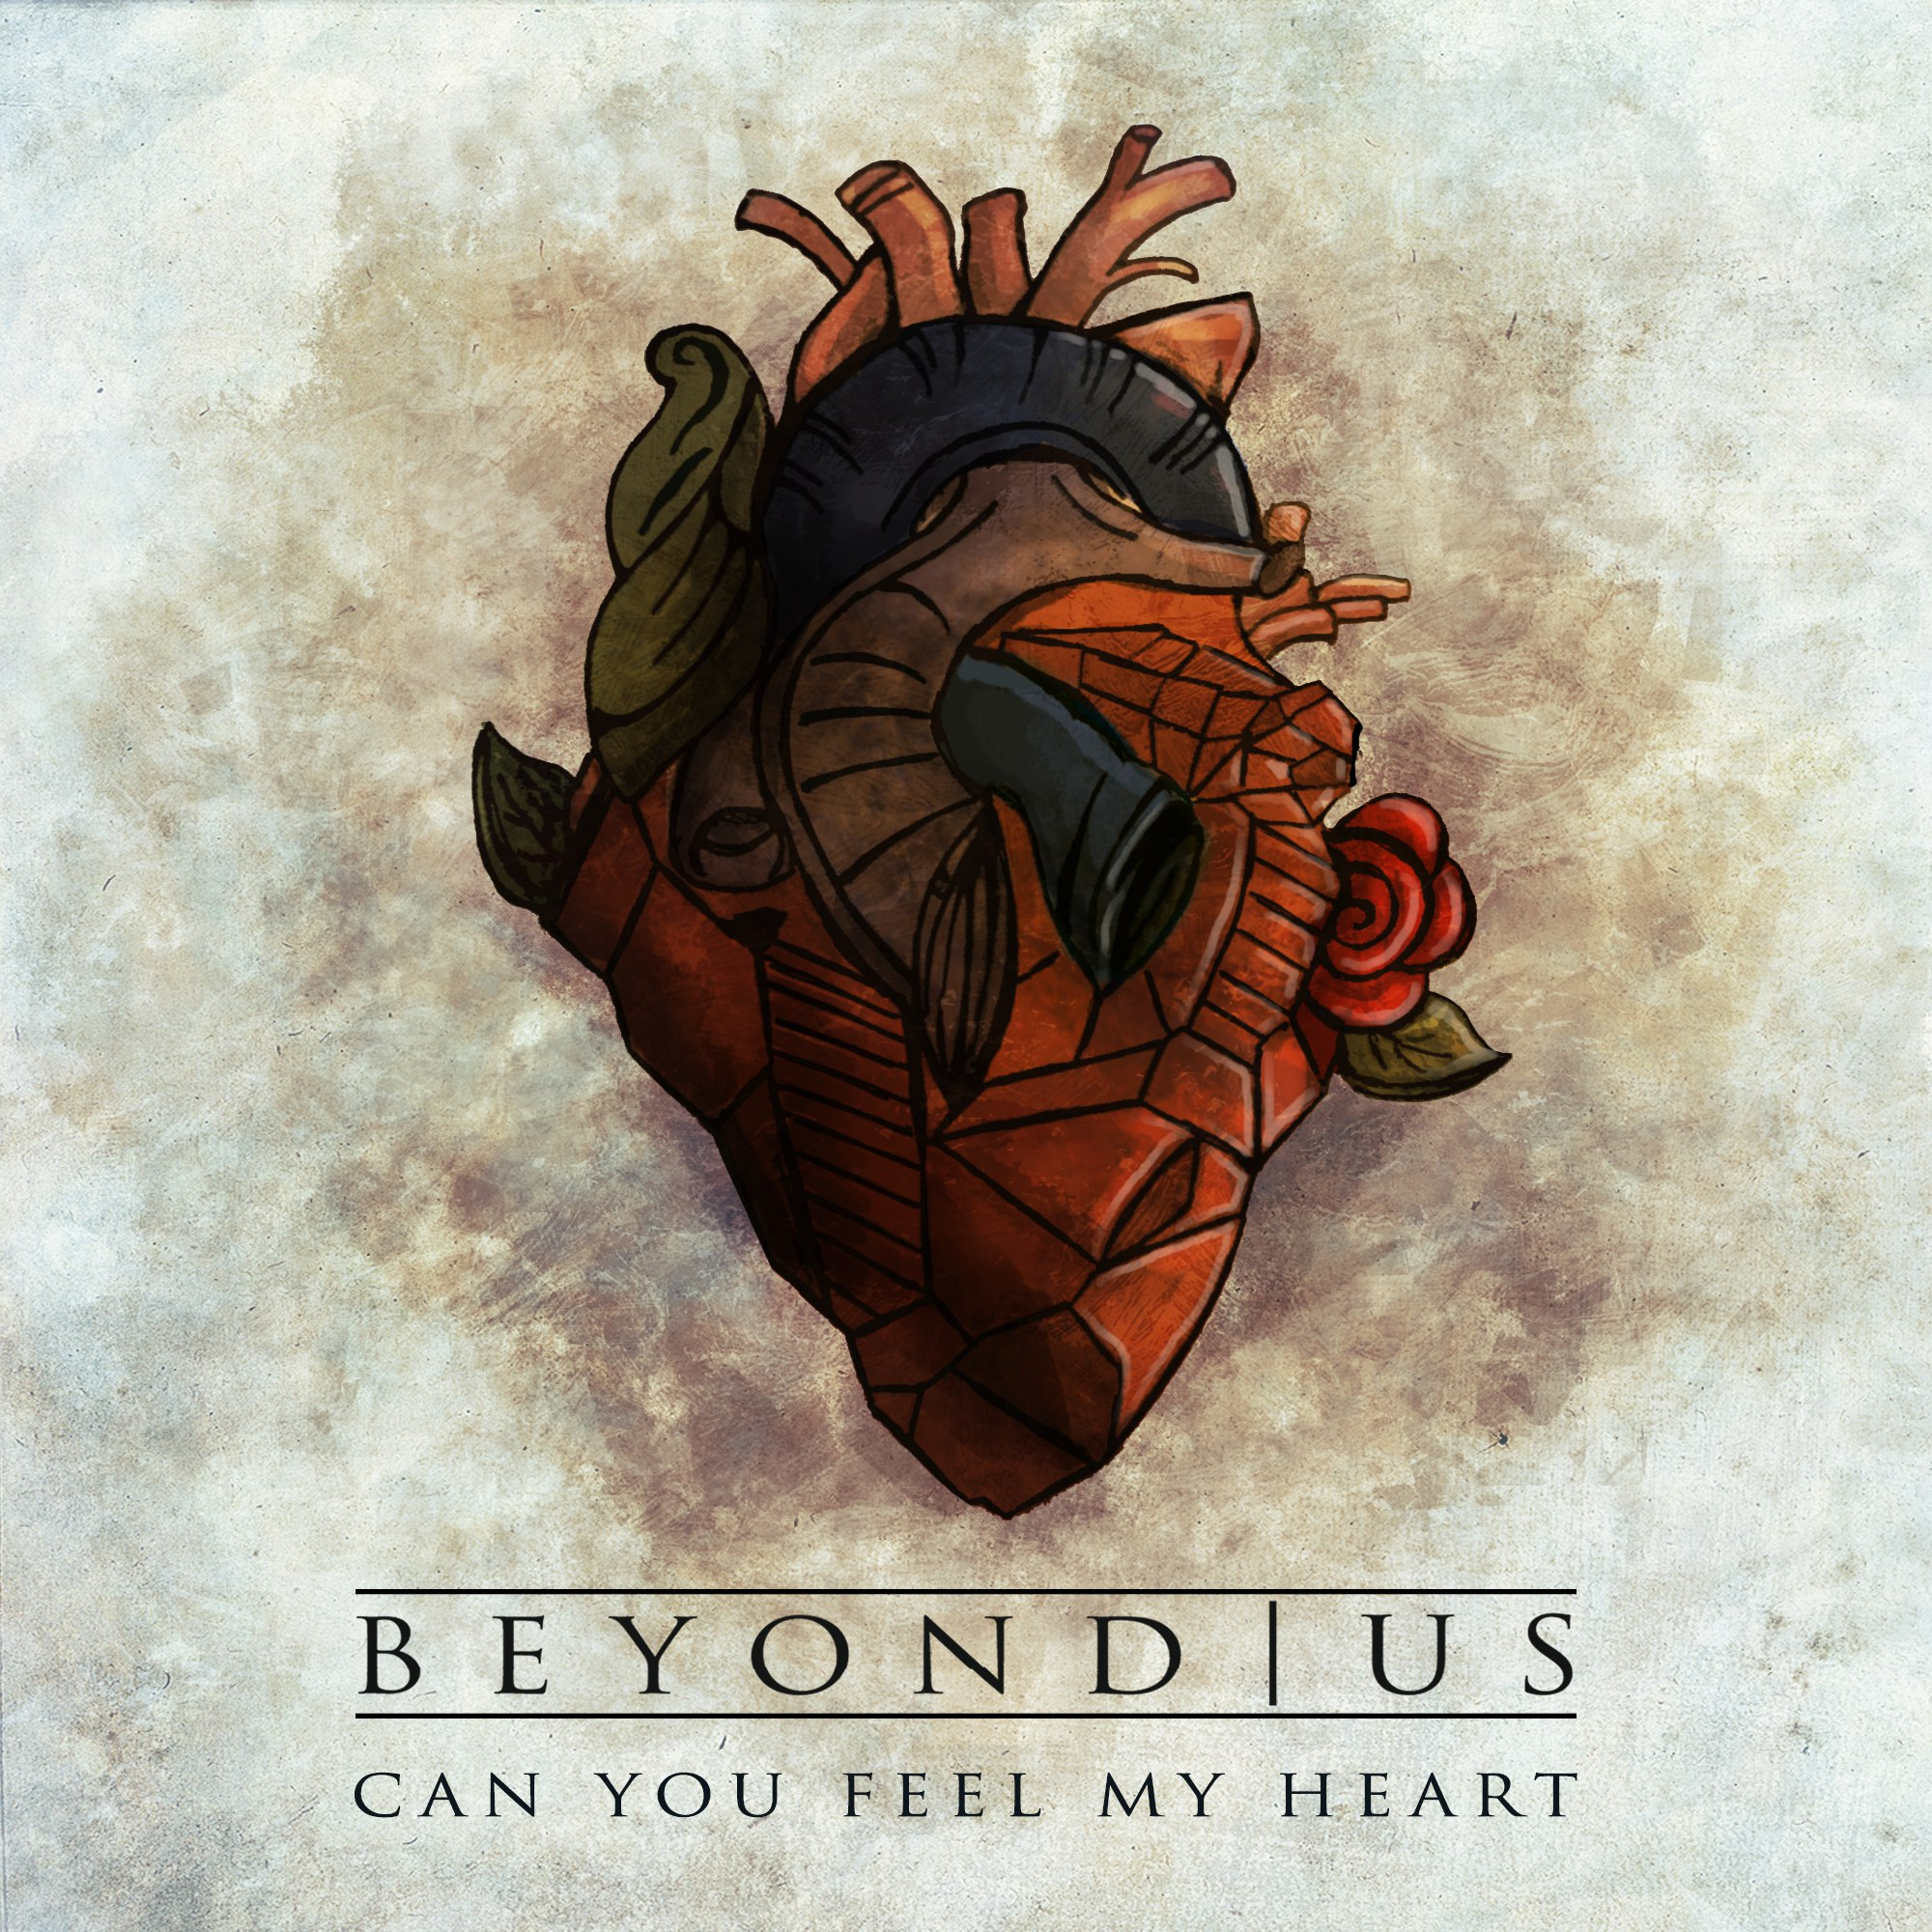 beyond|us - Can You Feel My Heart